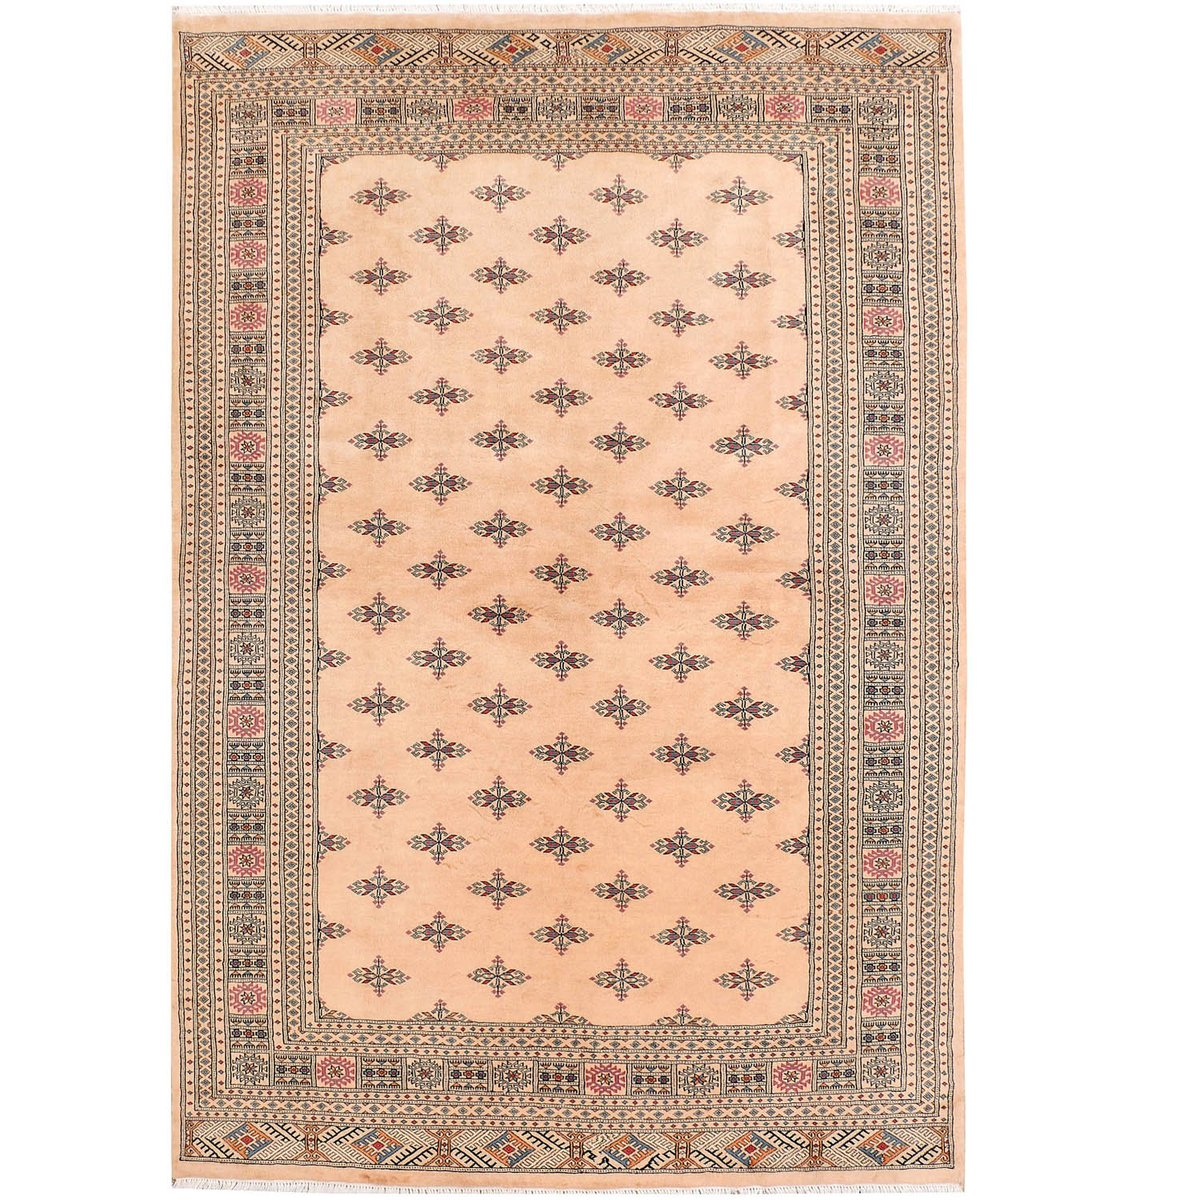 Bring in fun and comfort with enchanting #butterfly #handmade #rug available at #Qaleen! From the modern rugs to the traditional, the simple to the embellished, that will make your home look wonderful. Visit now  #homedecor #homedesign #pakistanirug